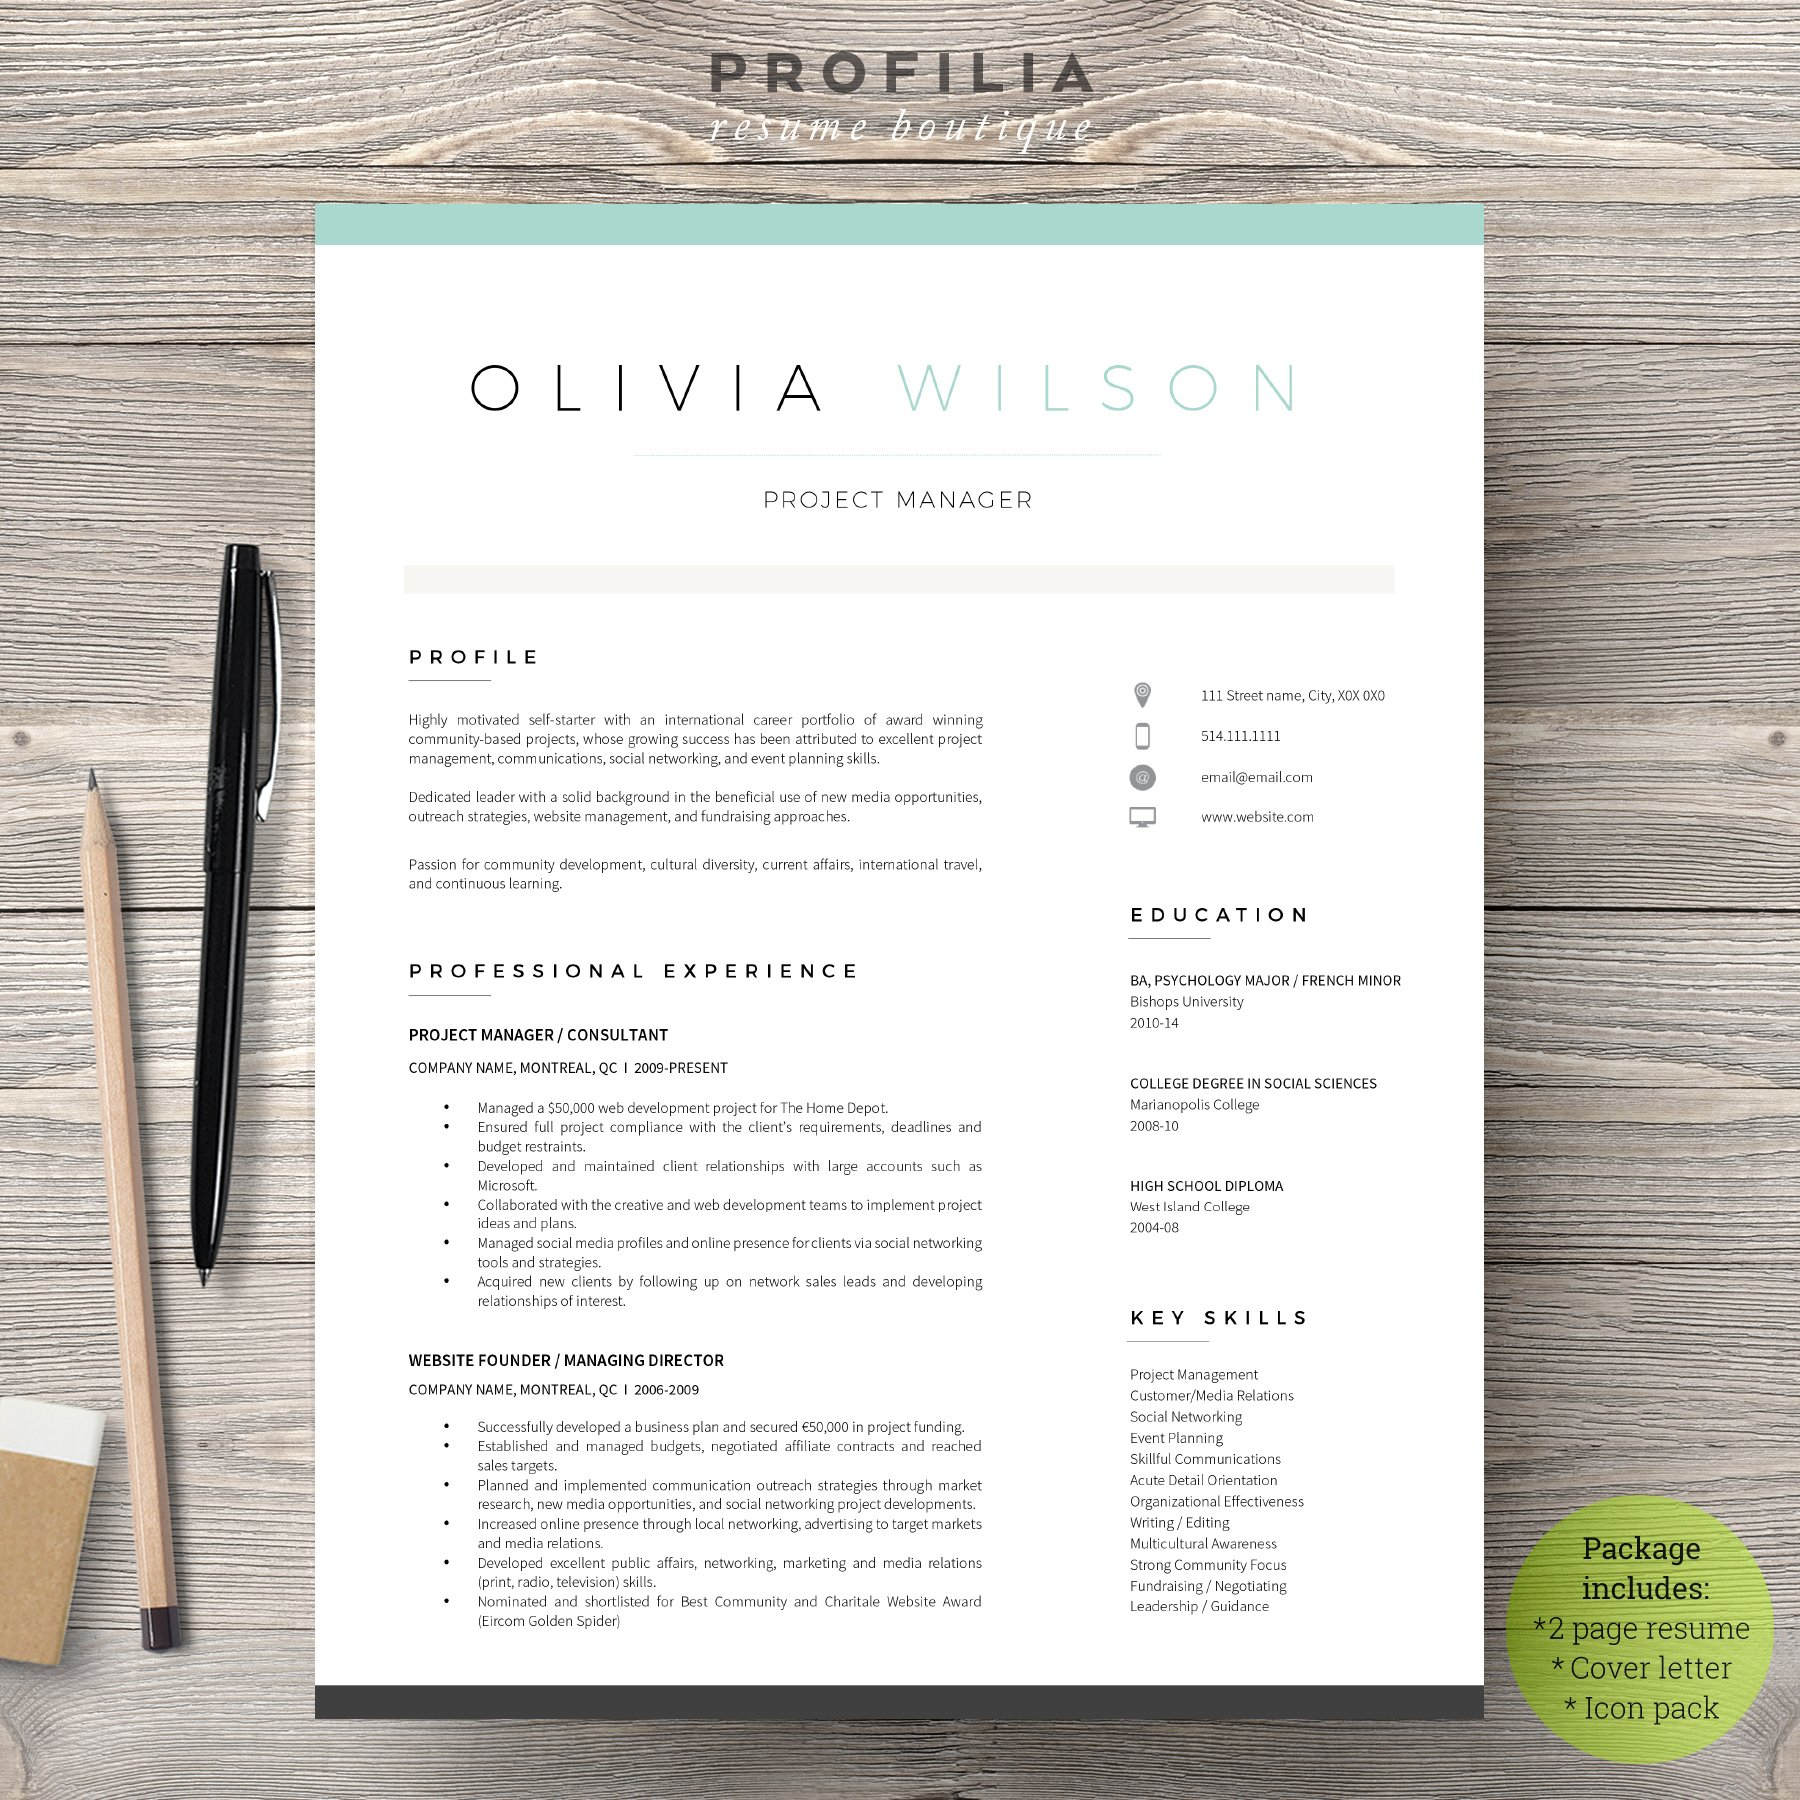 Word Resume Cover Letter Template Resume Templates Creative Market - Free cover letter template word download